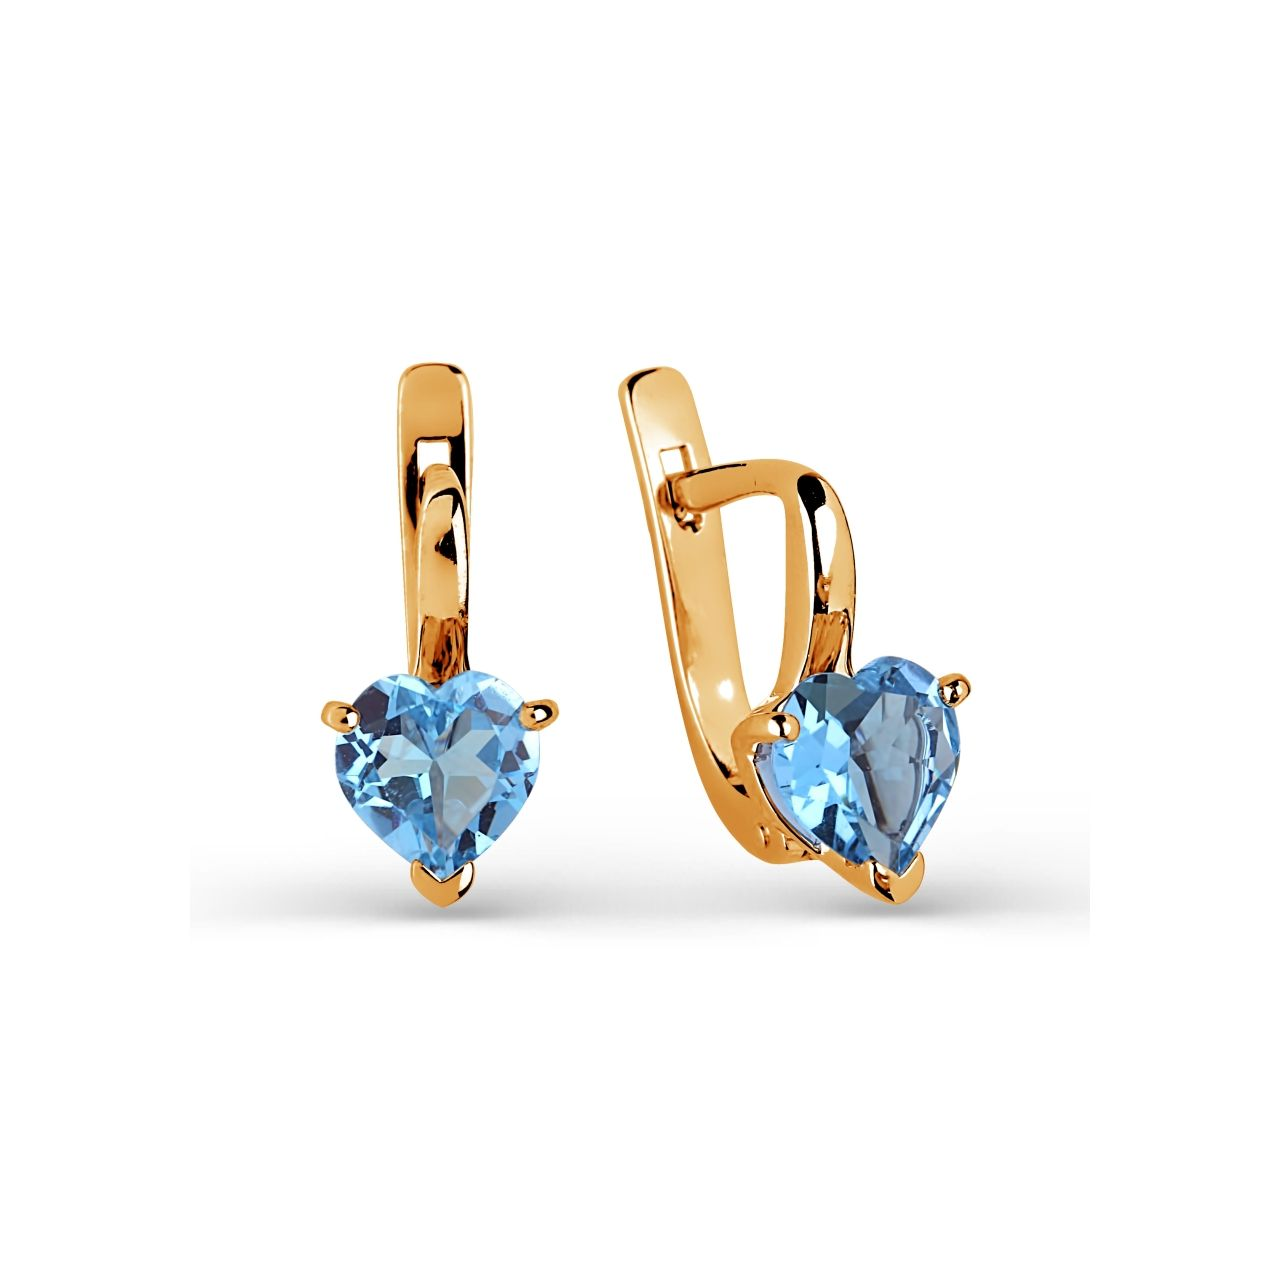 w earrings clip p gold earring price topaz with clips french blue htm white list natural